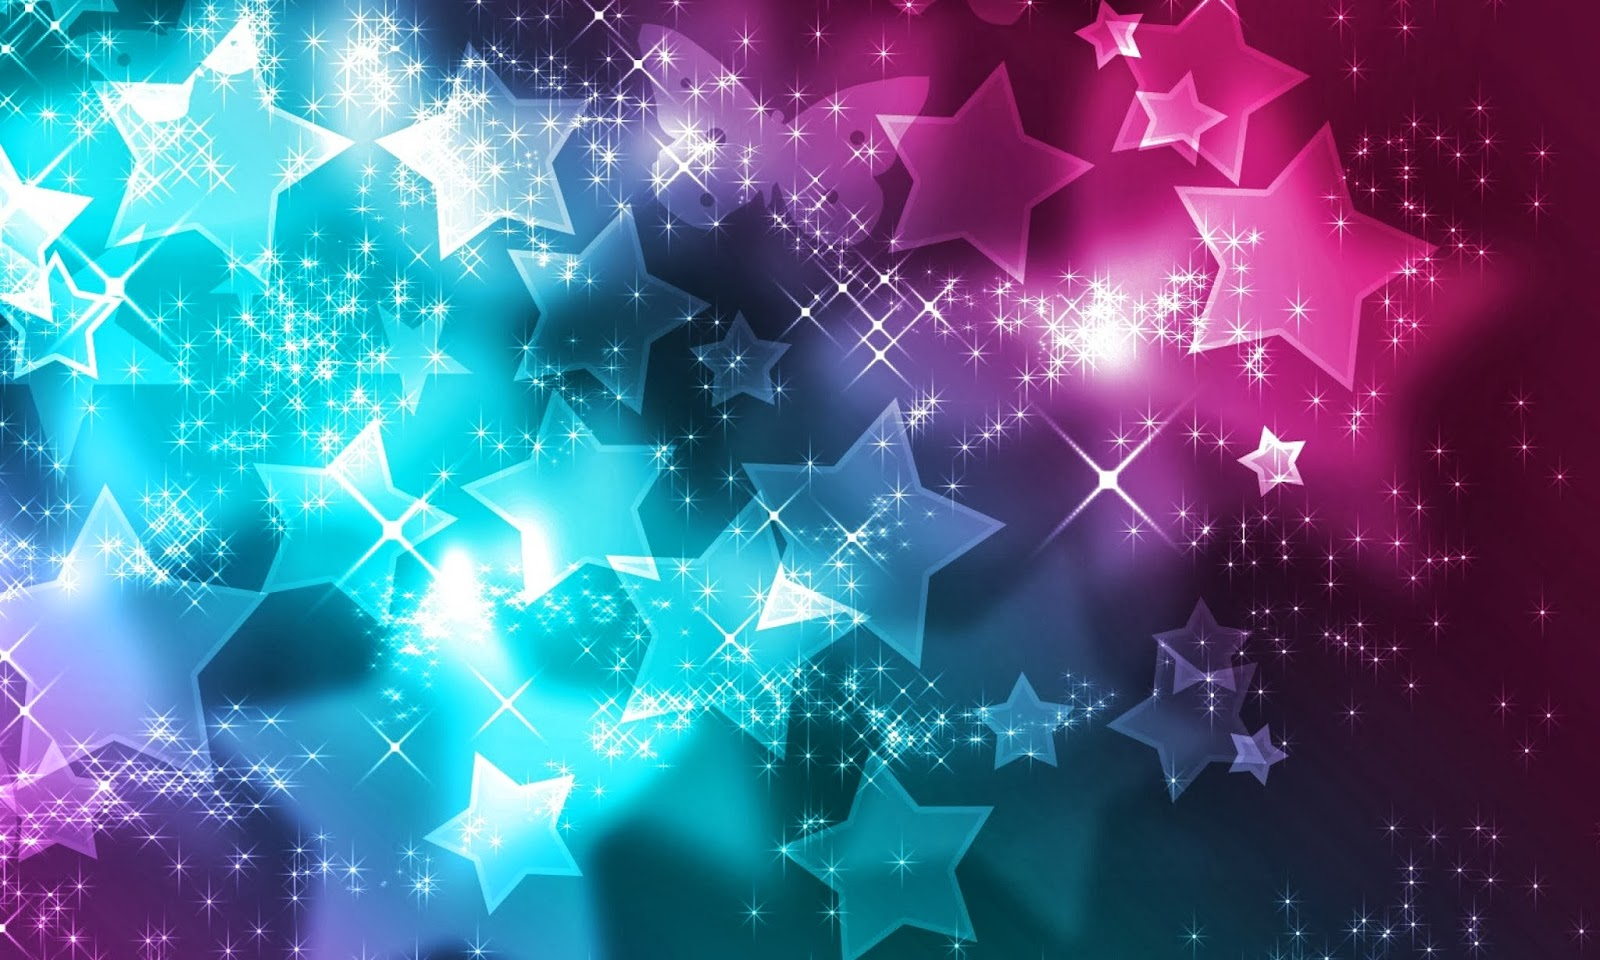 star abstract hd wallpapers hd wallpapers high definition free